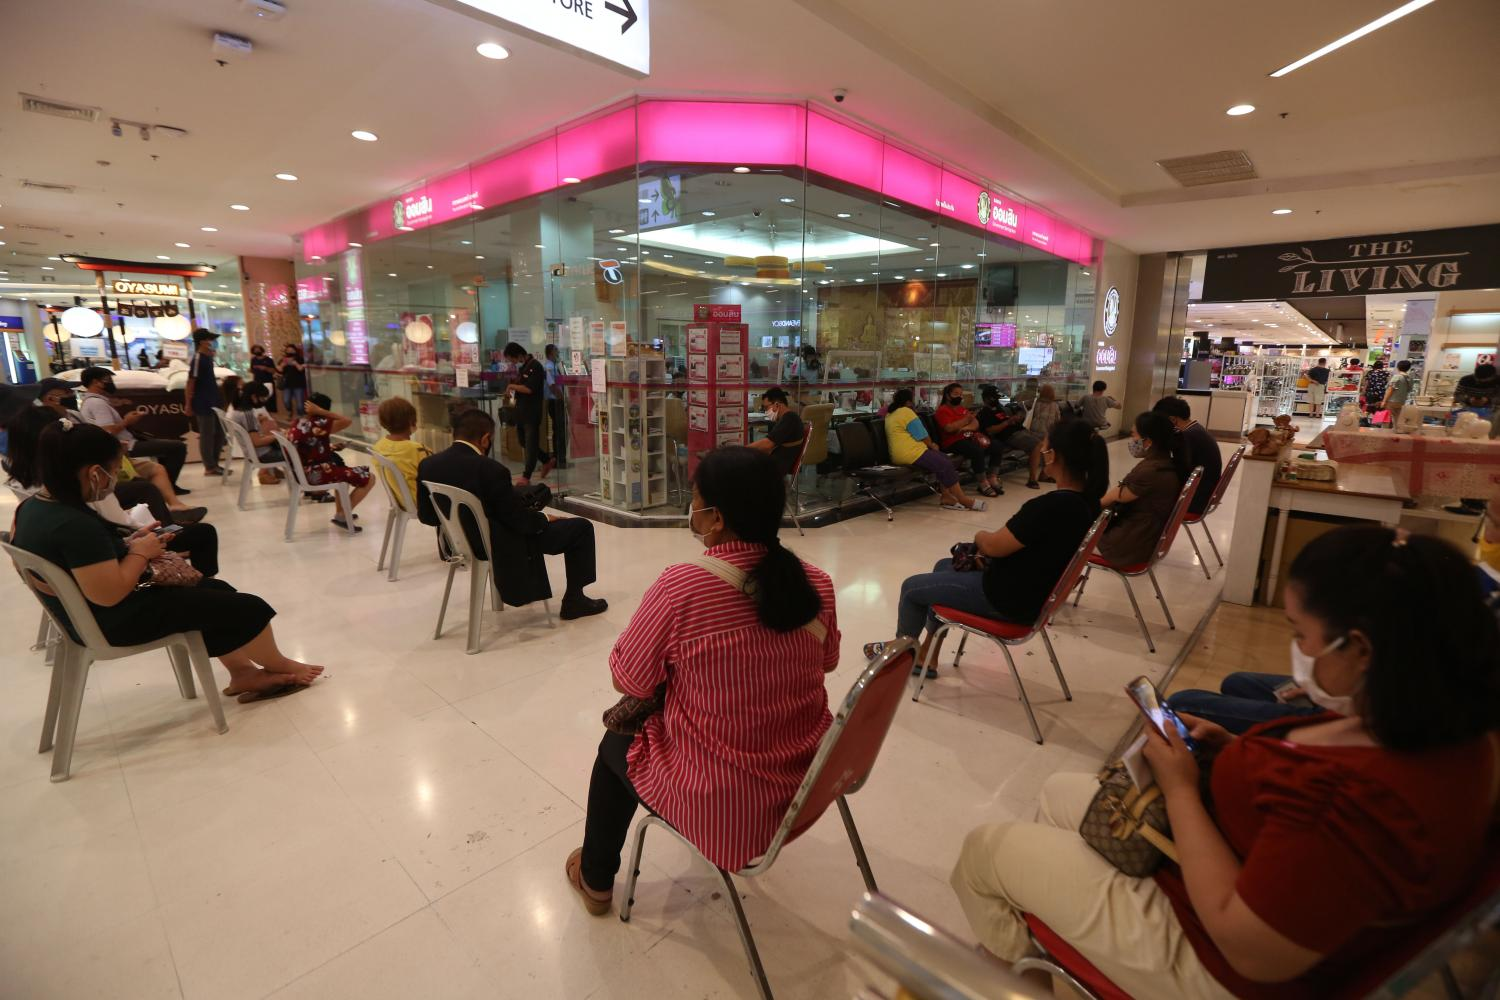 People adhere to social distancing while queuing at a Government Savings Bank branch in a shopping mall. Varuth Hirunyatheb